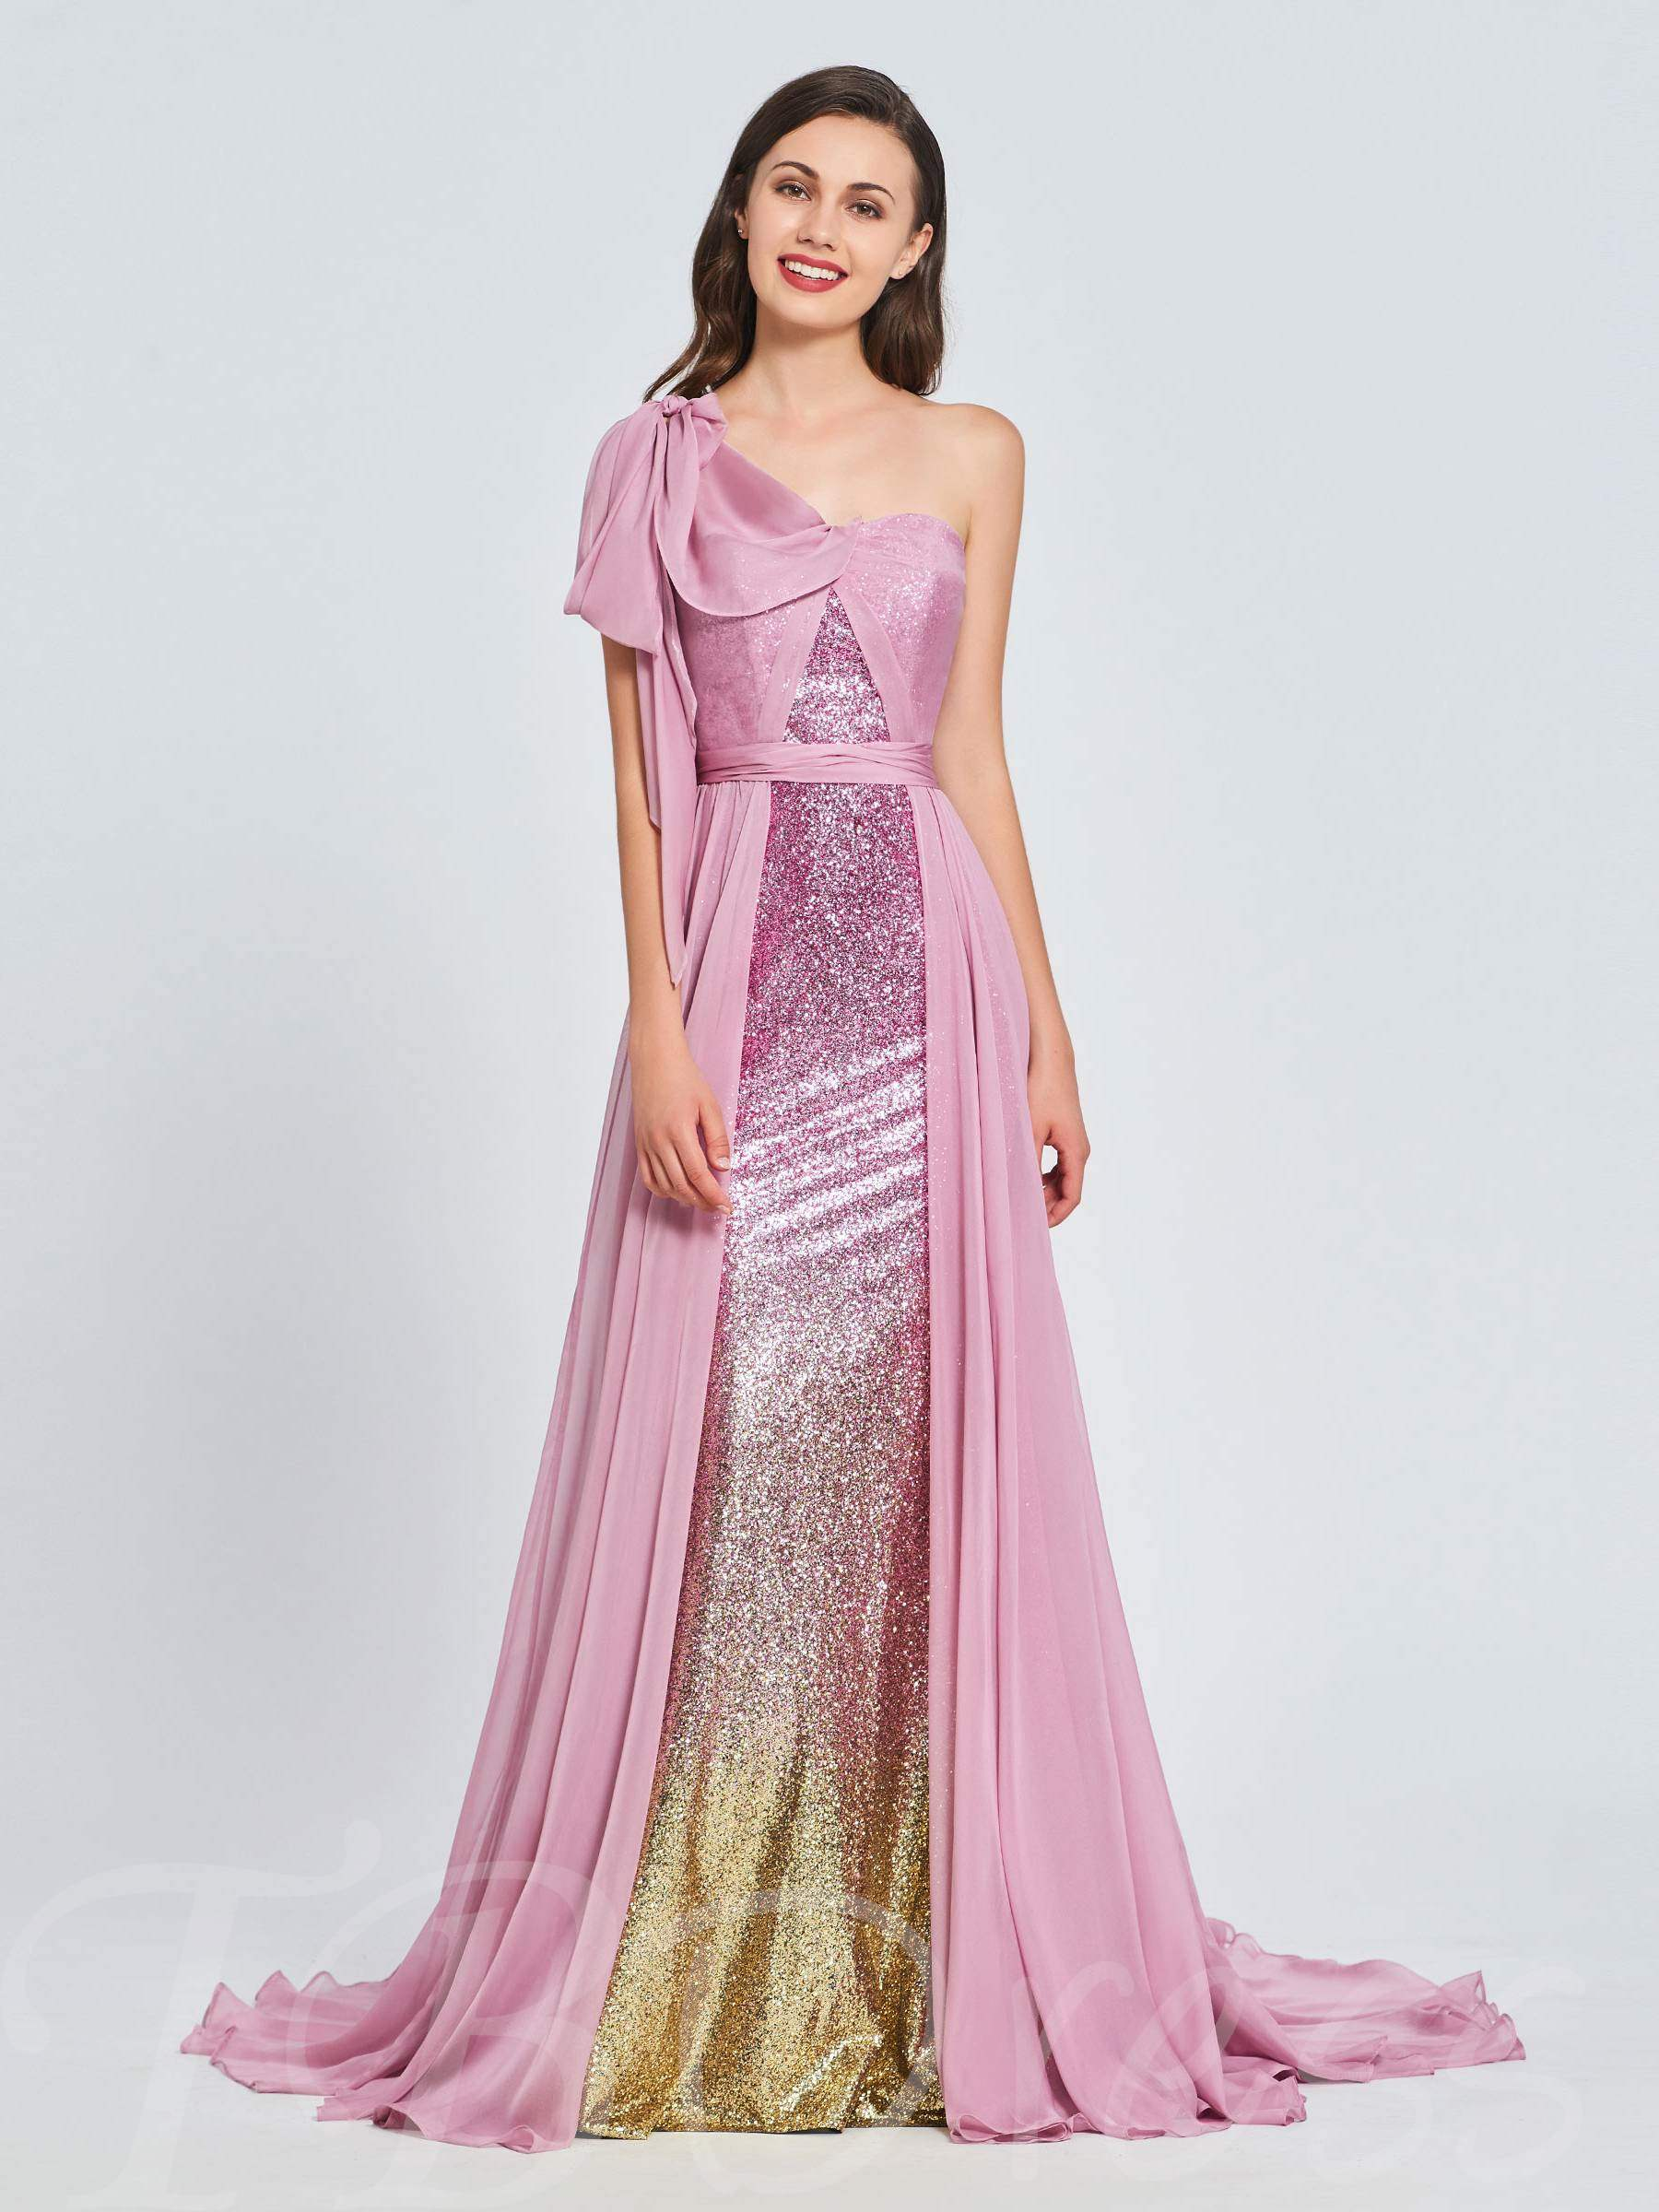 Buy A-Line One-Shoulder Cascading Ruffles Sequins Prom Dress, Spring,Summer,Fall,Winter, 13394730 for $144.79 in TBDress store